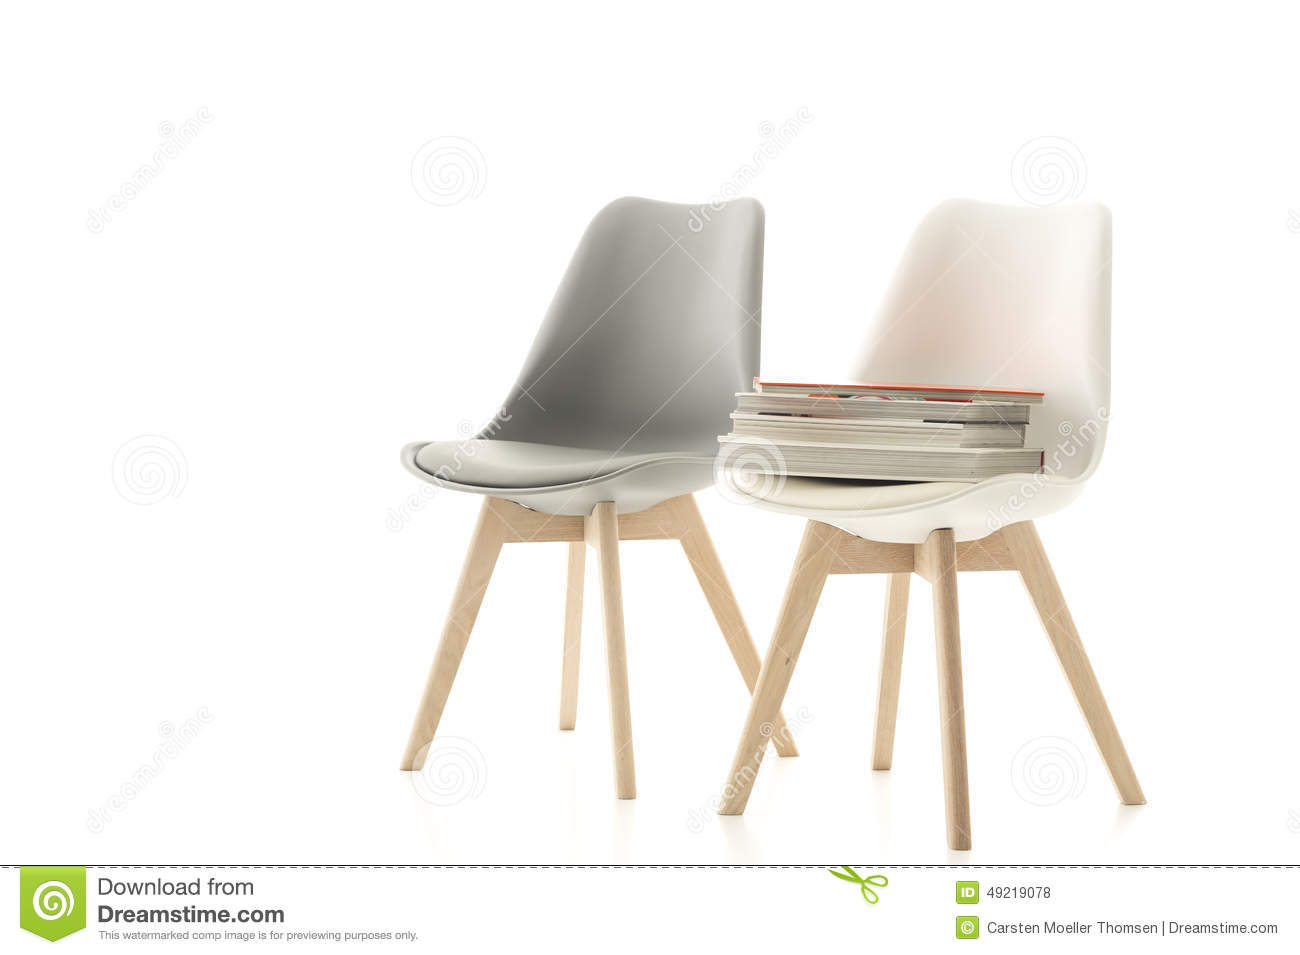 Un assortiment de la chaise moderne grise et blanche photo - Chaise blanche et grise ...